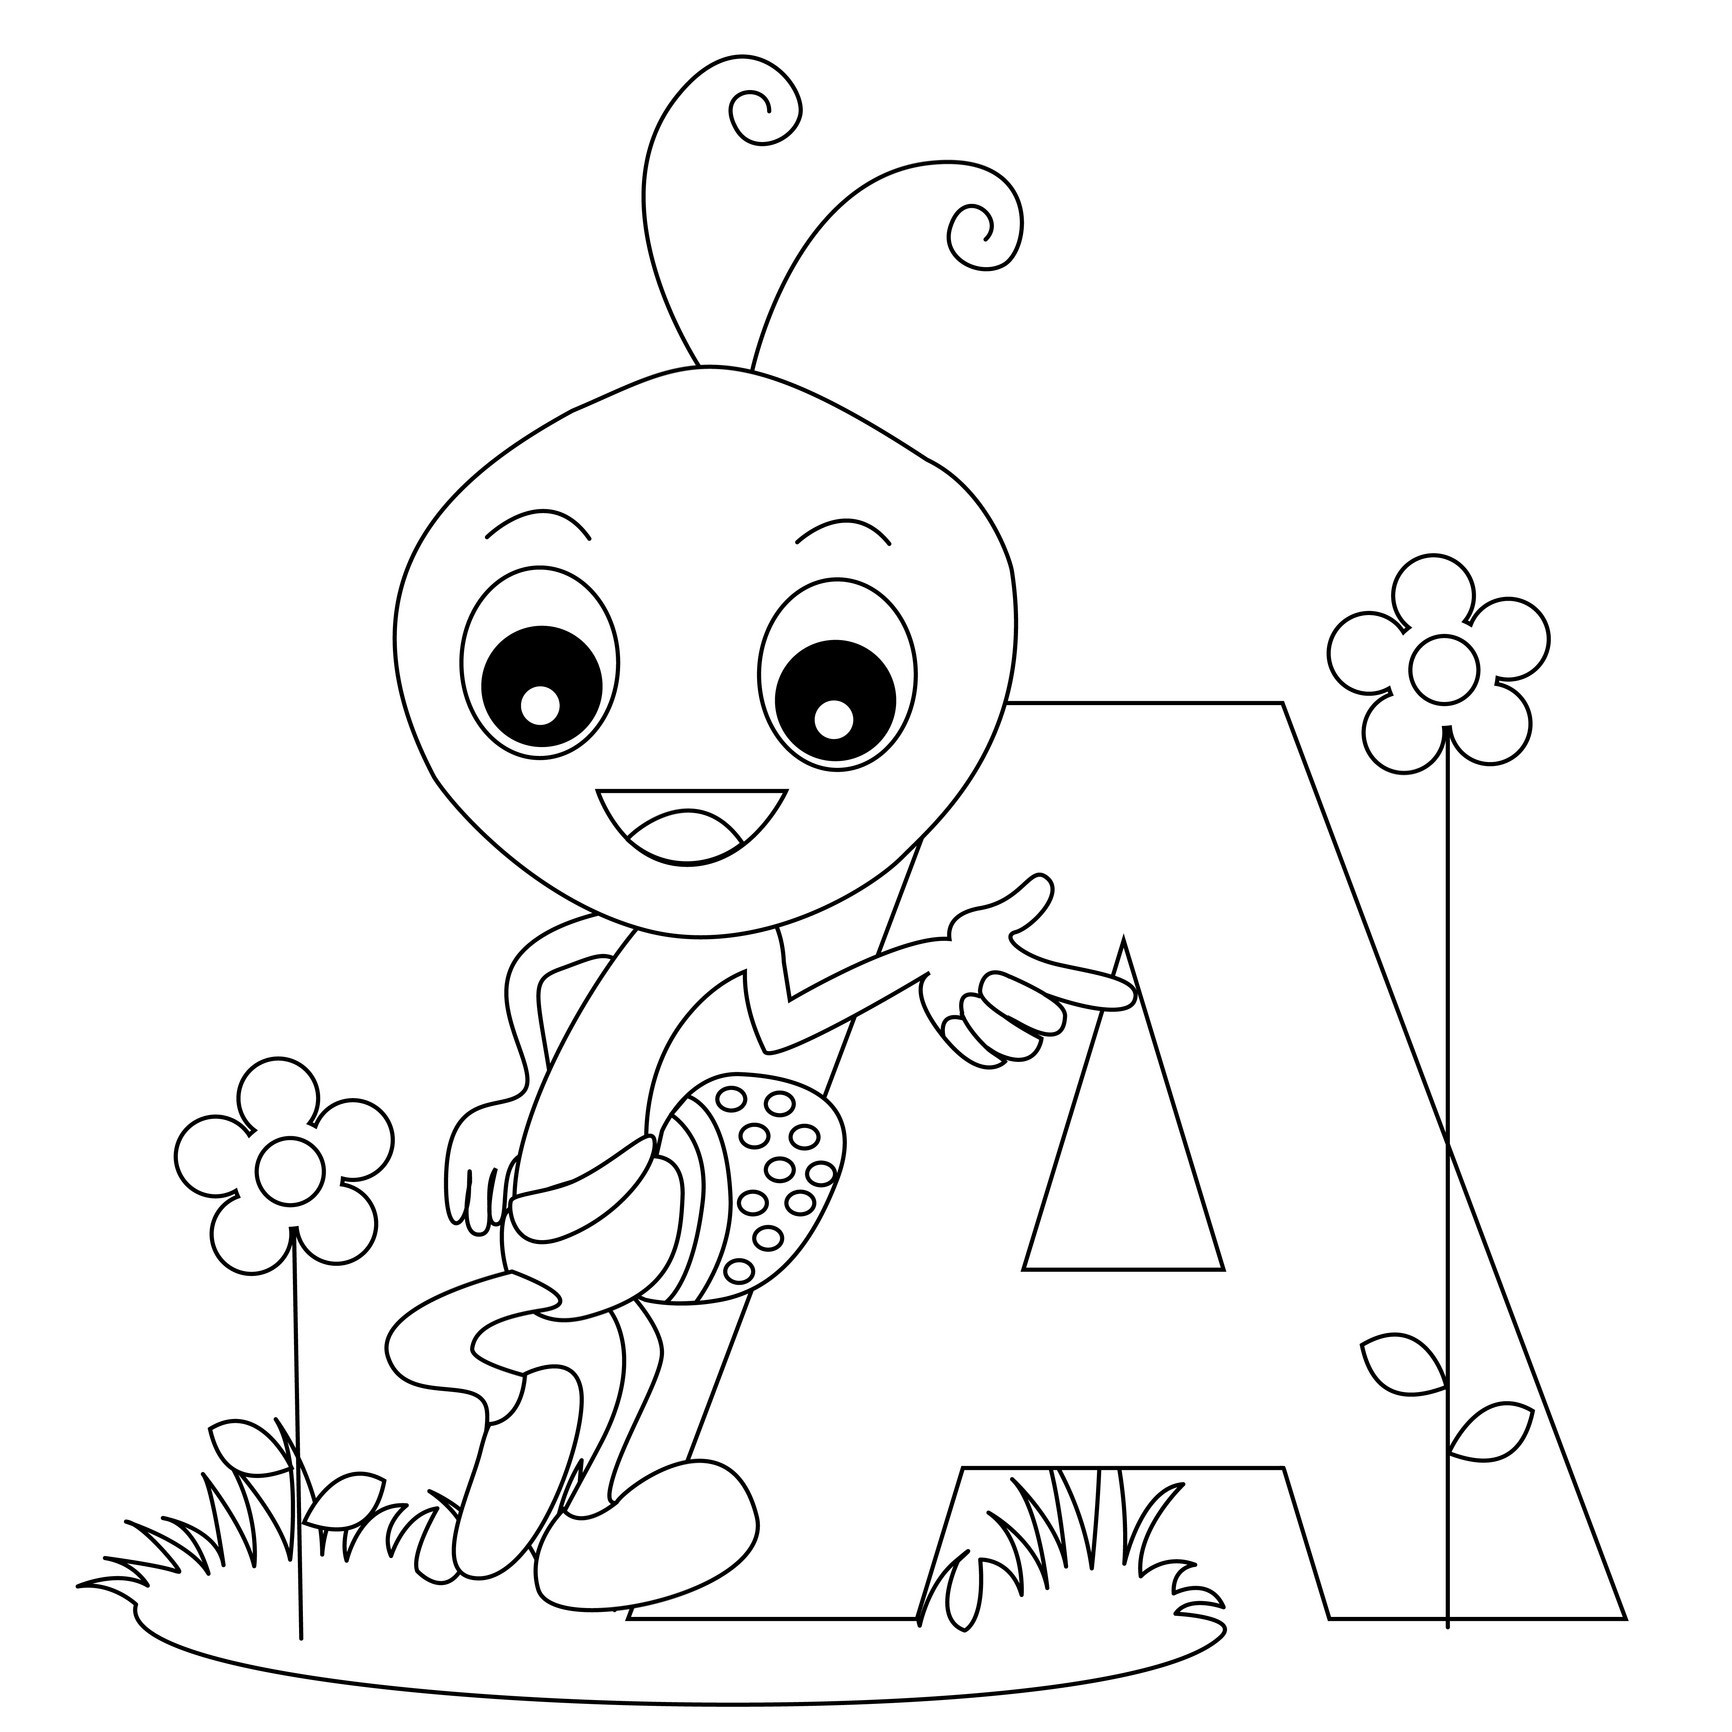 Free Printable Alphabet Coloring Pages For Kids - Best Coloring - Free Alphabet Coloring Printables